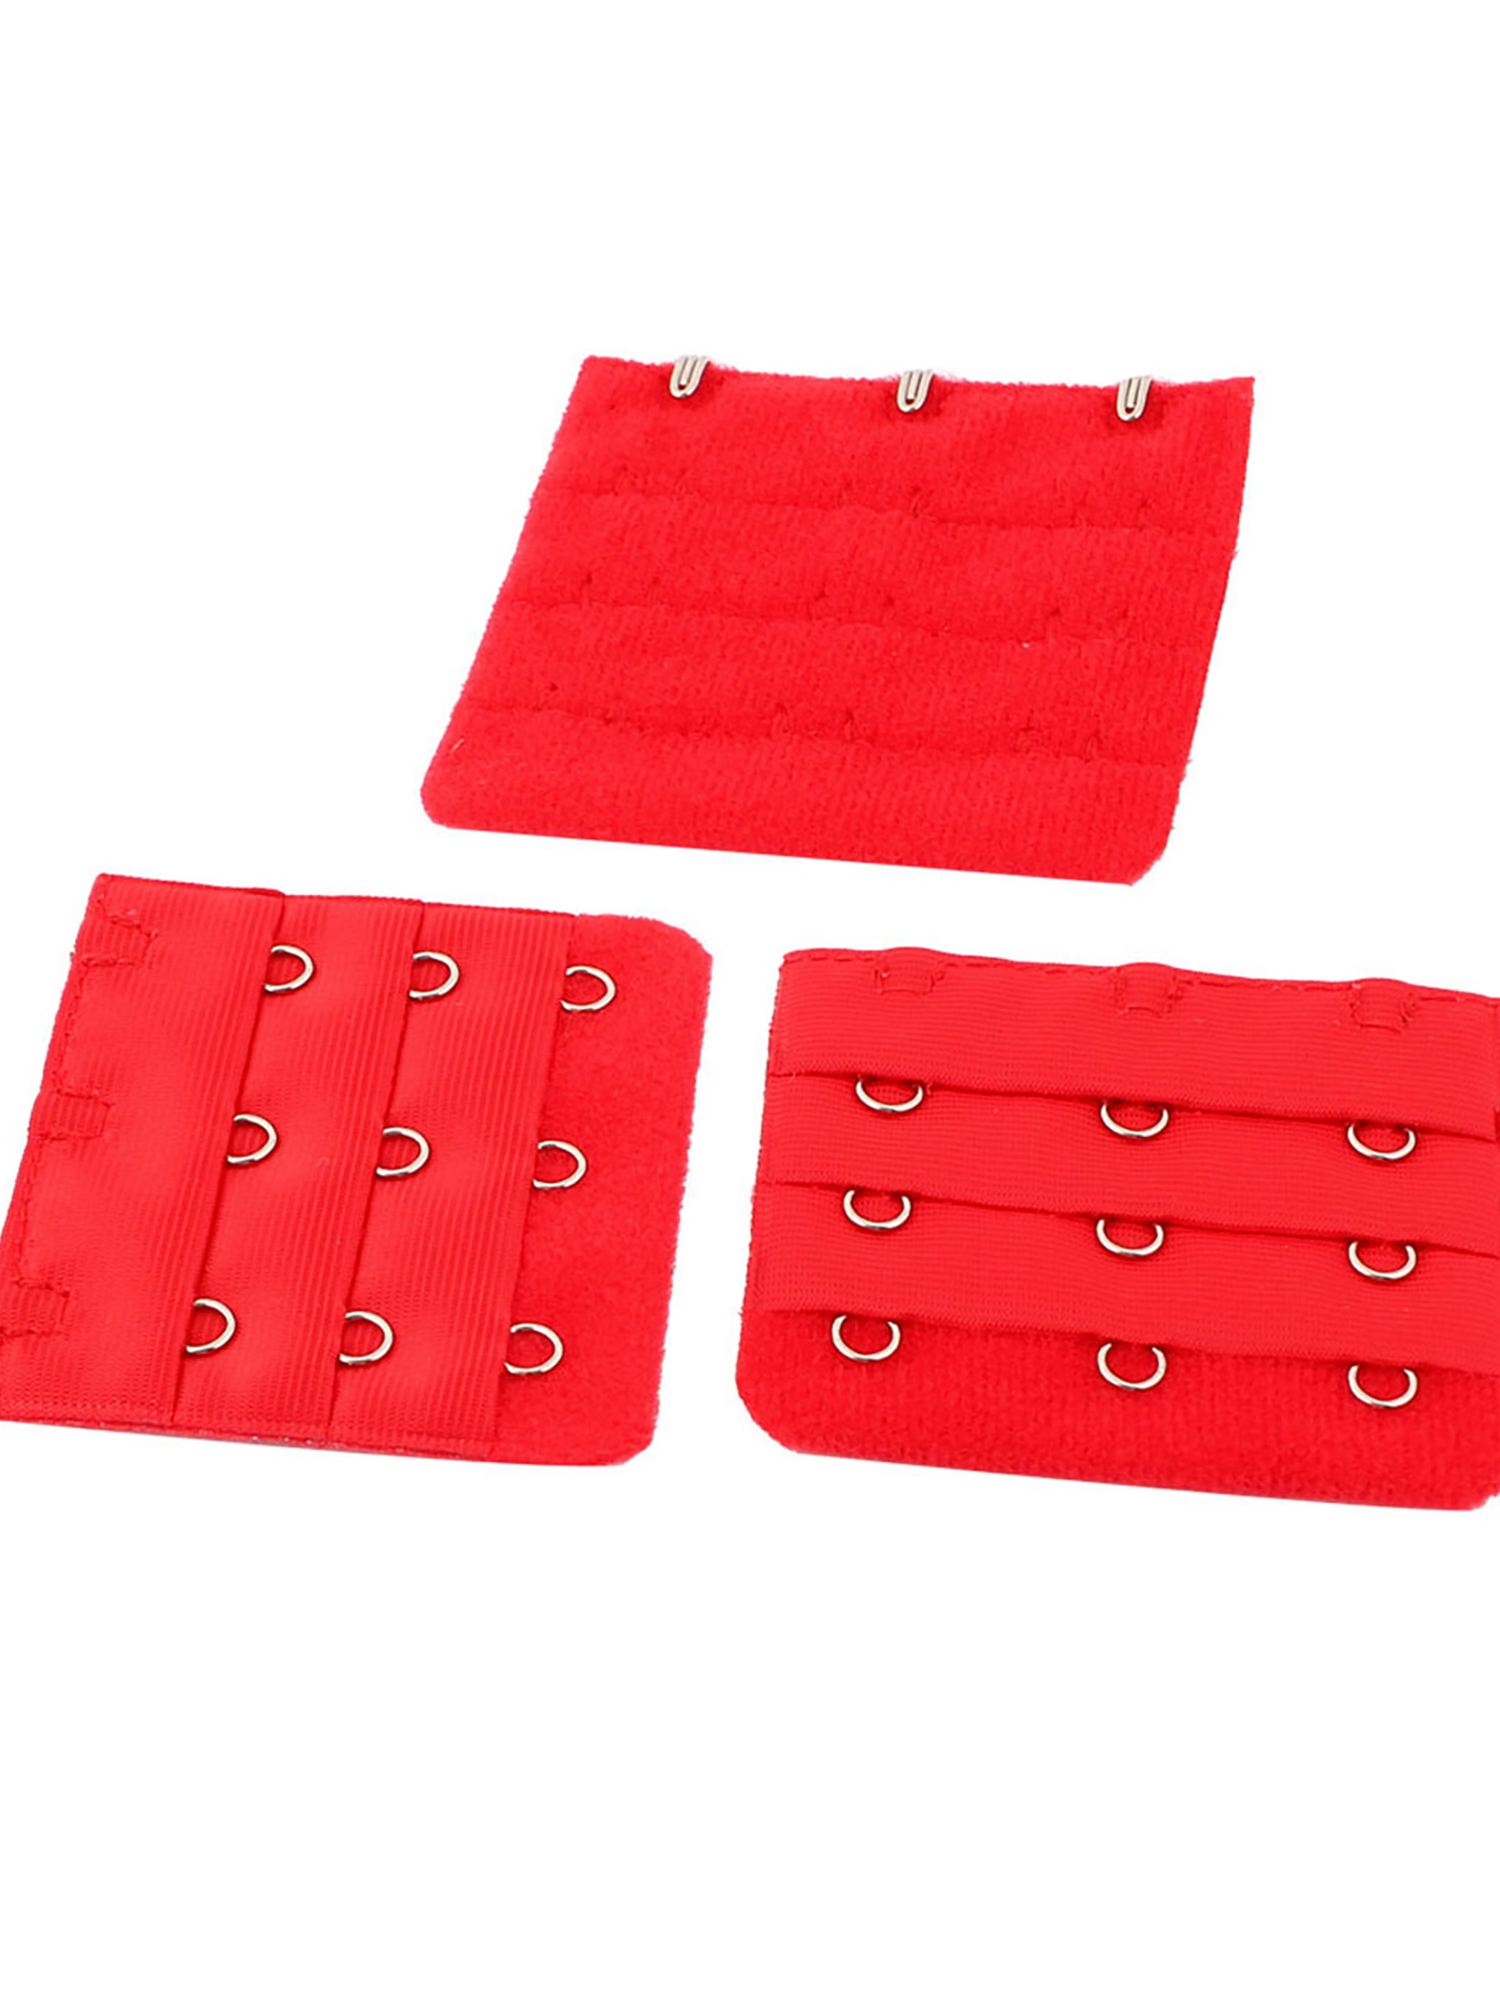 Lady 3 x 3 Hooks Brassiere Bra Underwear Extension Strap Extender Red 3pcs